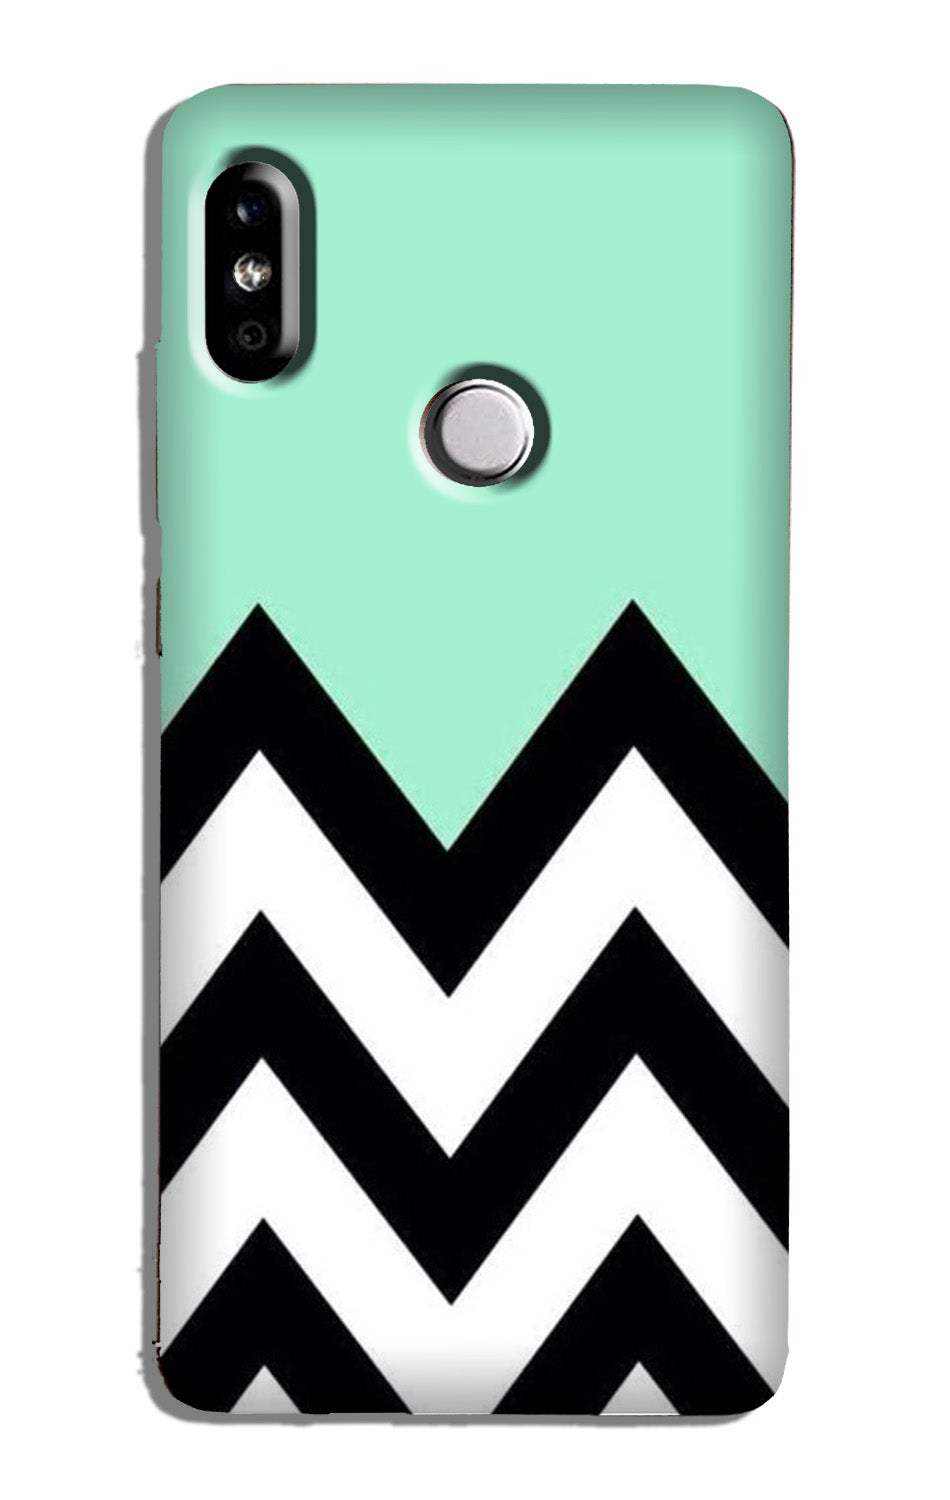 Pattern Case for Redmi Note 6 Pro